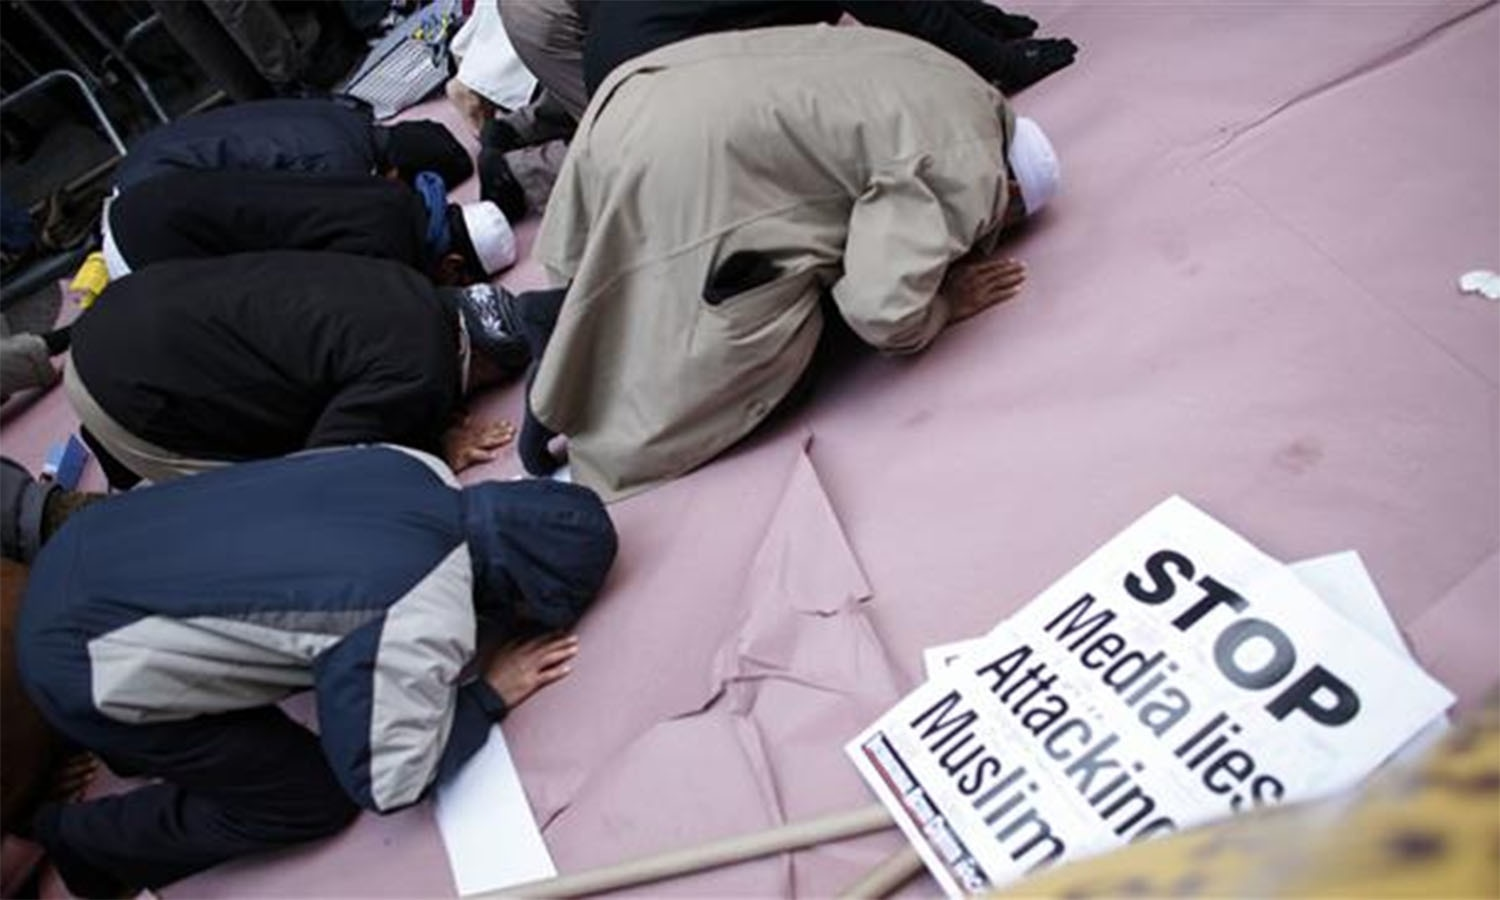 A group of Muslims prays at a rally outside Trump Tower.—AFP